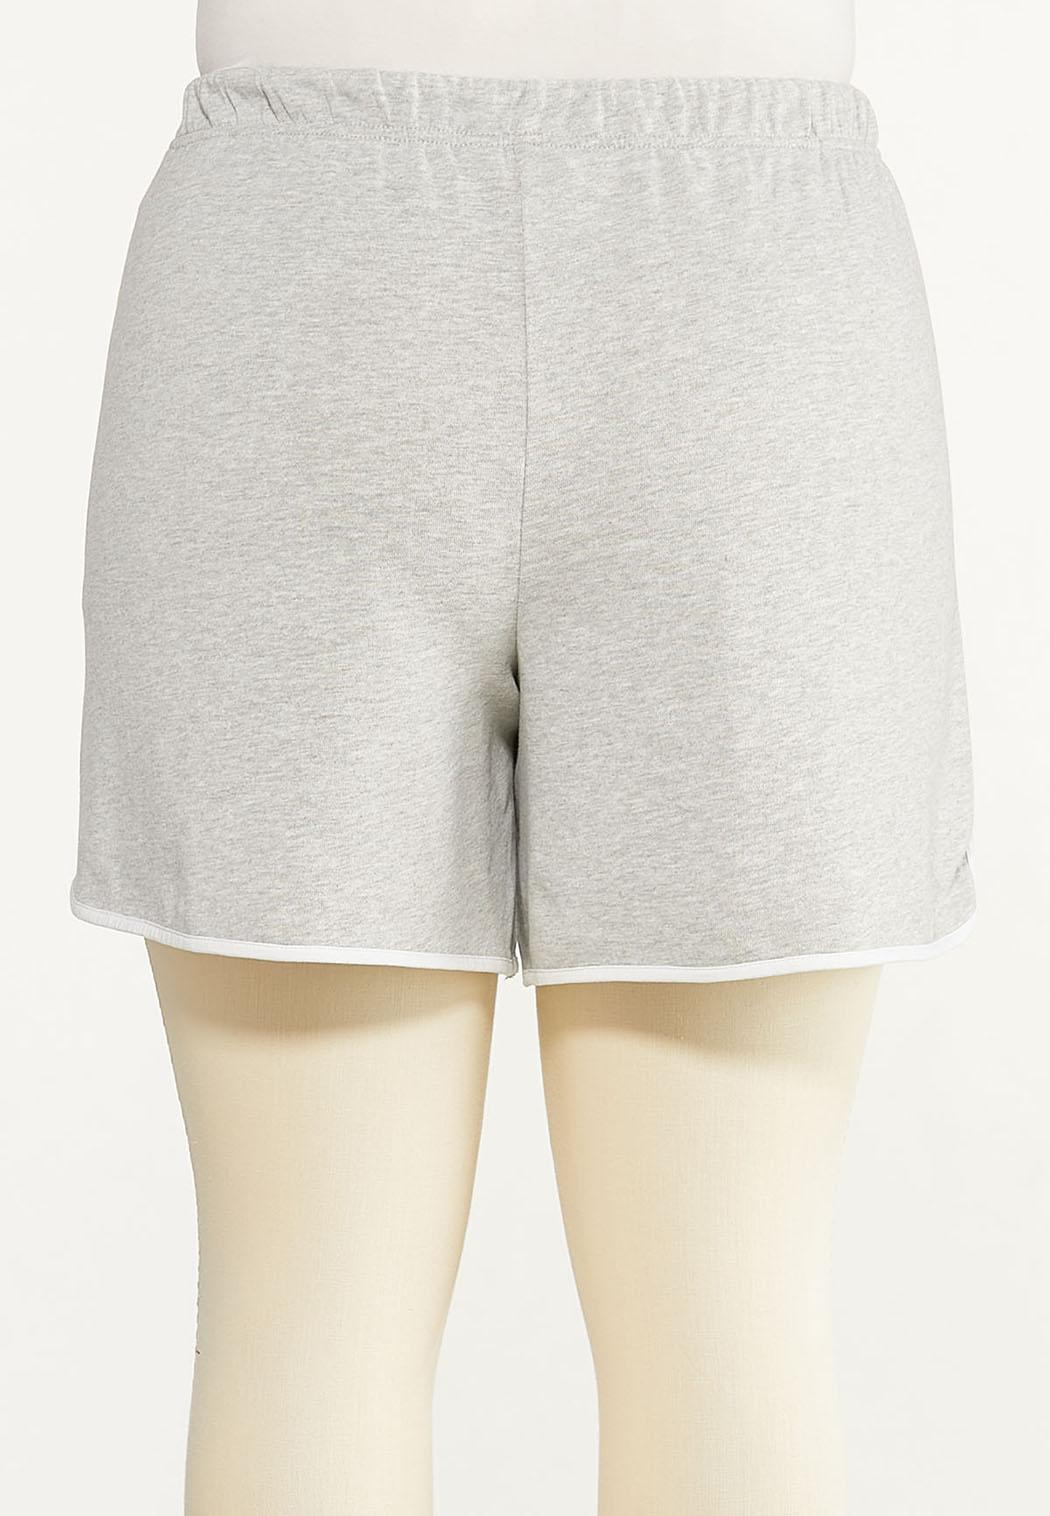 Plus Size French Terry Dolphin Shorts (Item #44602610)